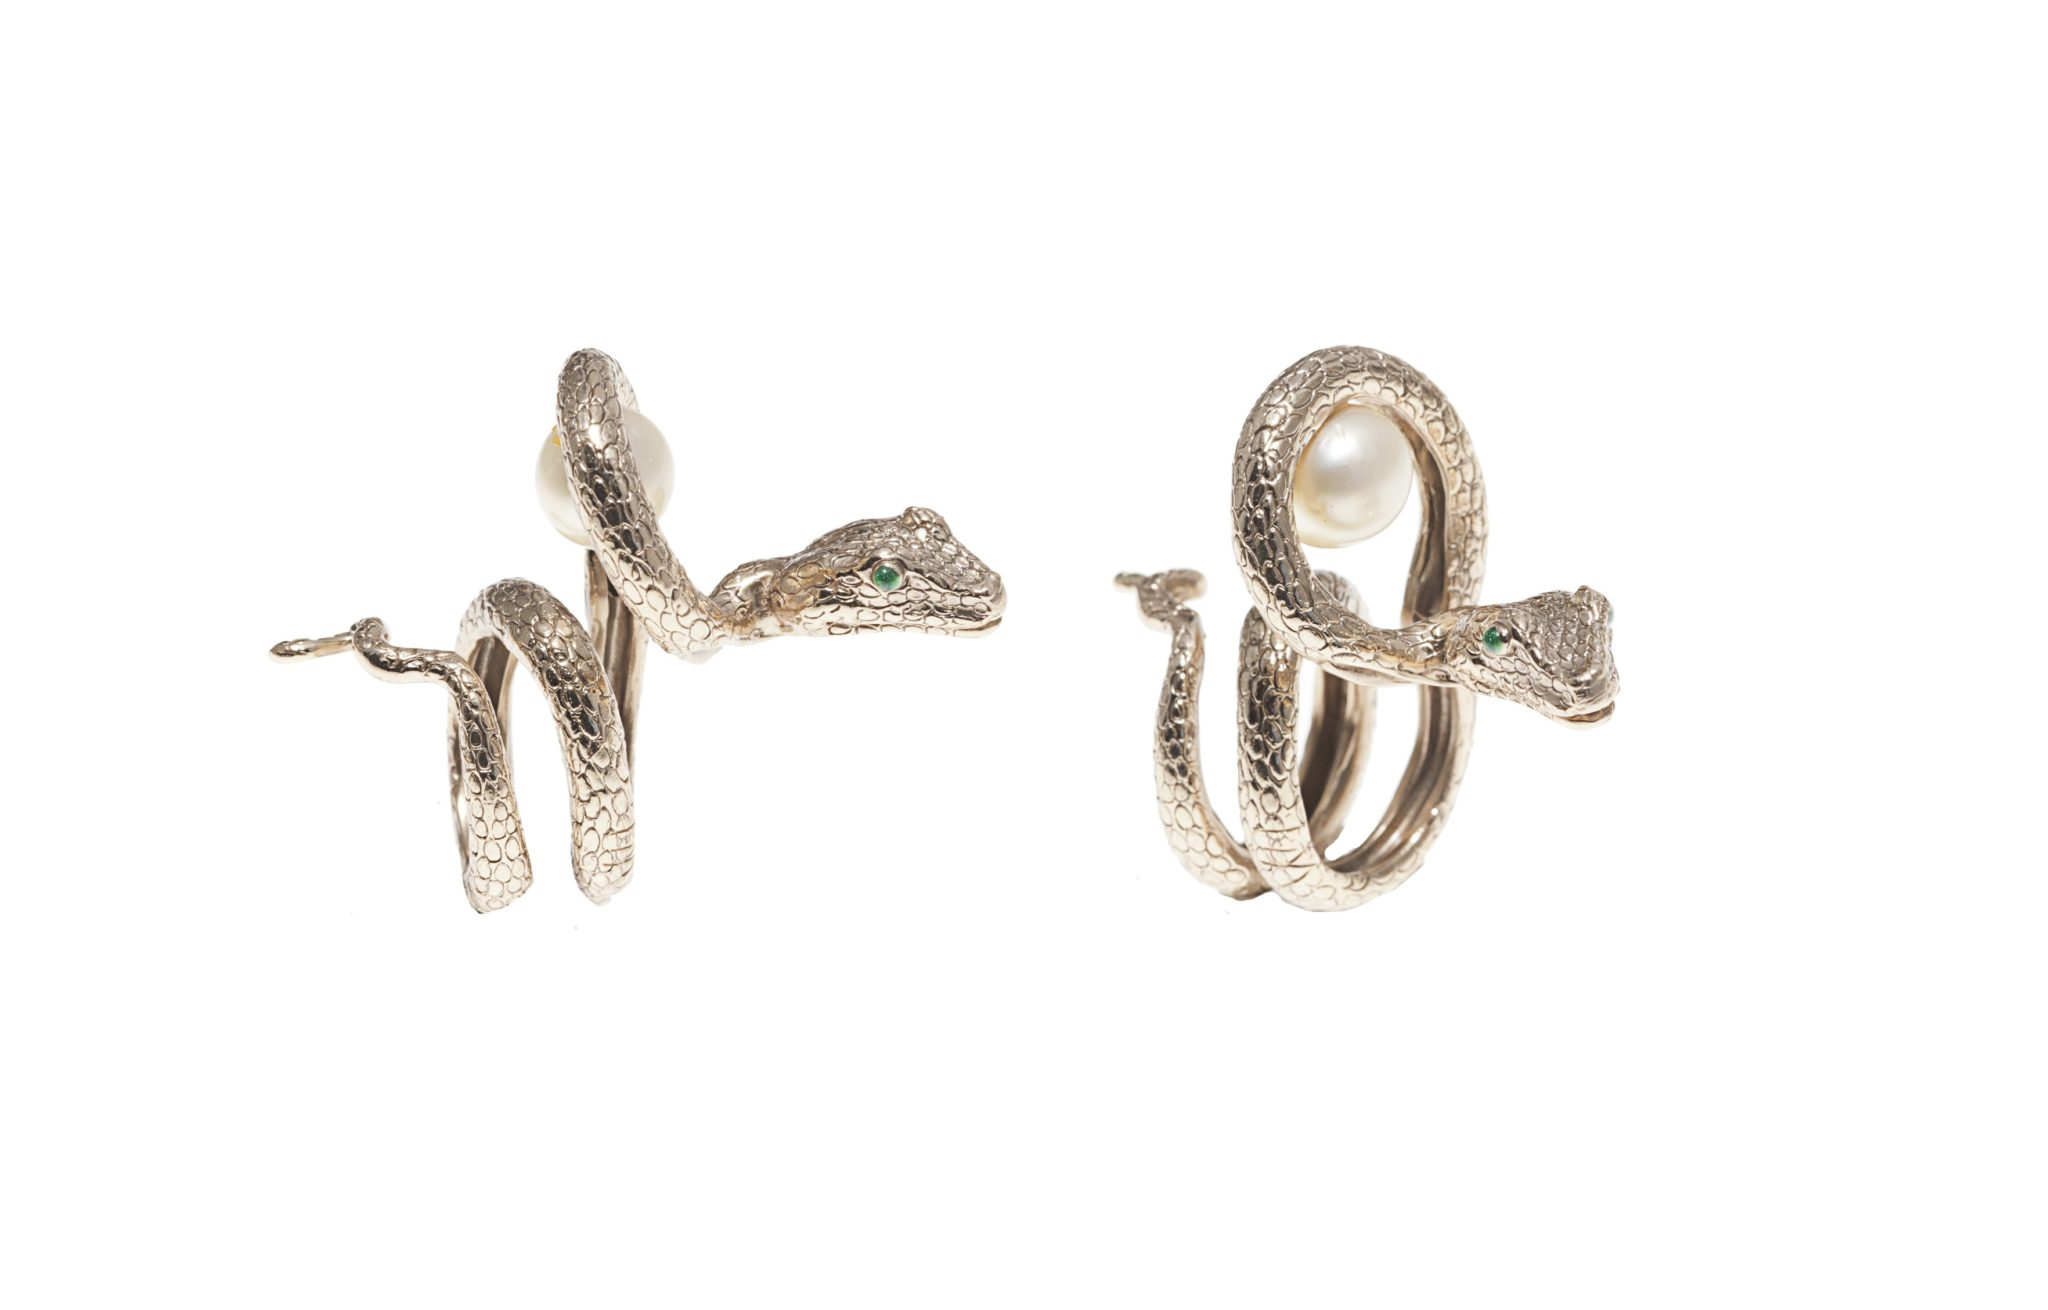 Arched snake bronze ring with pearl